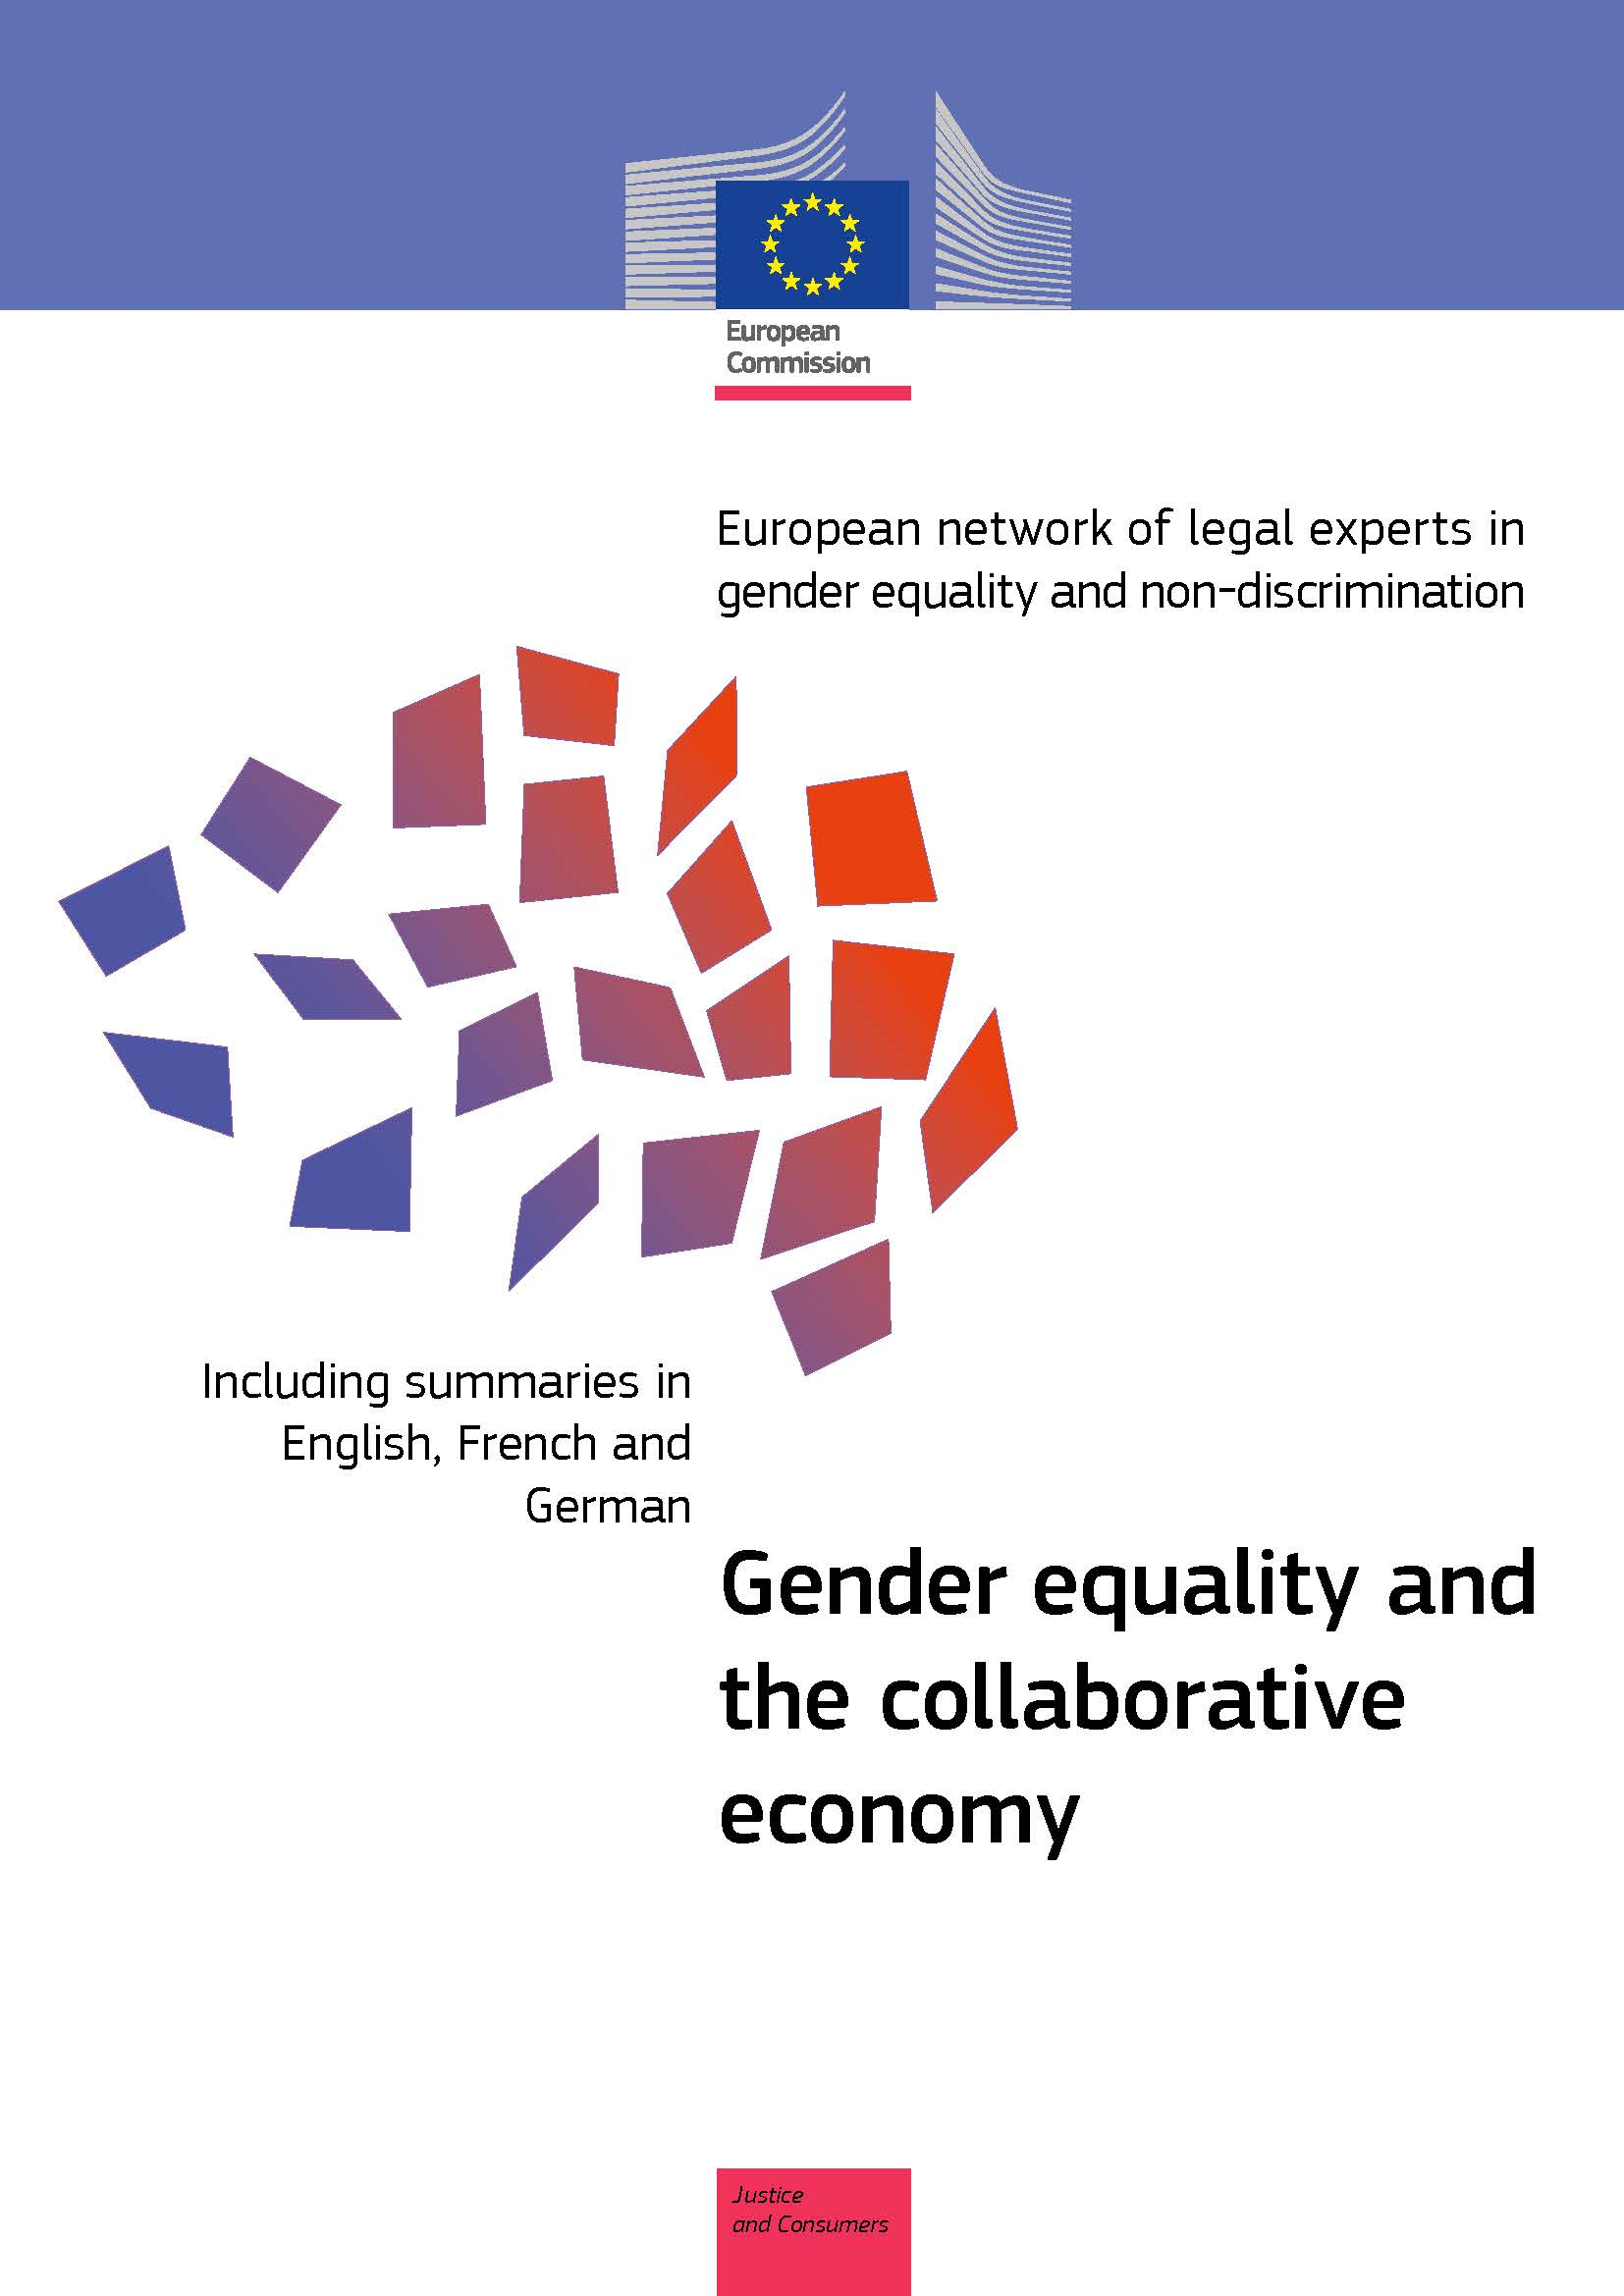 Gender equality and the collaborative economy (PDF 721 kB)